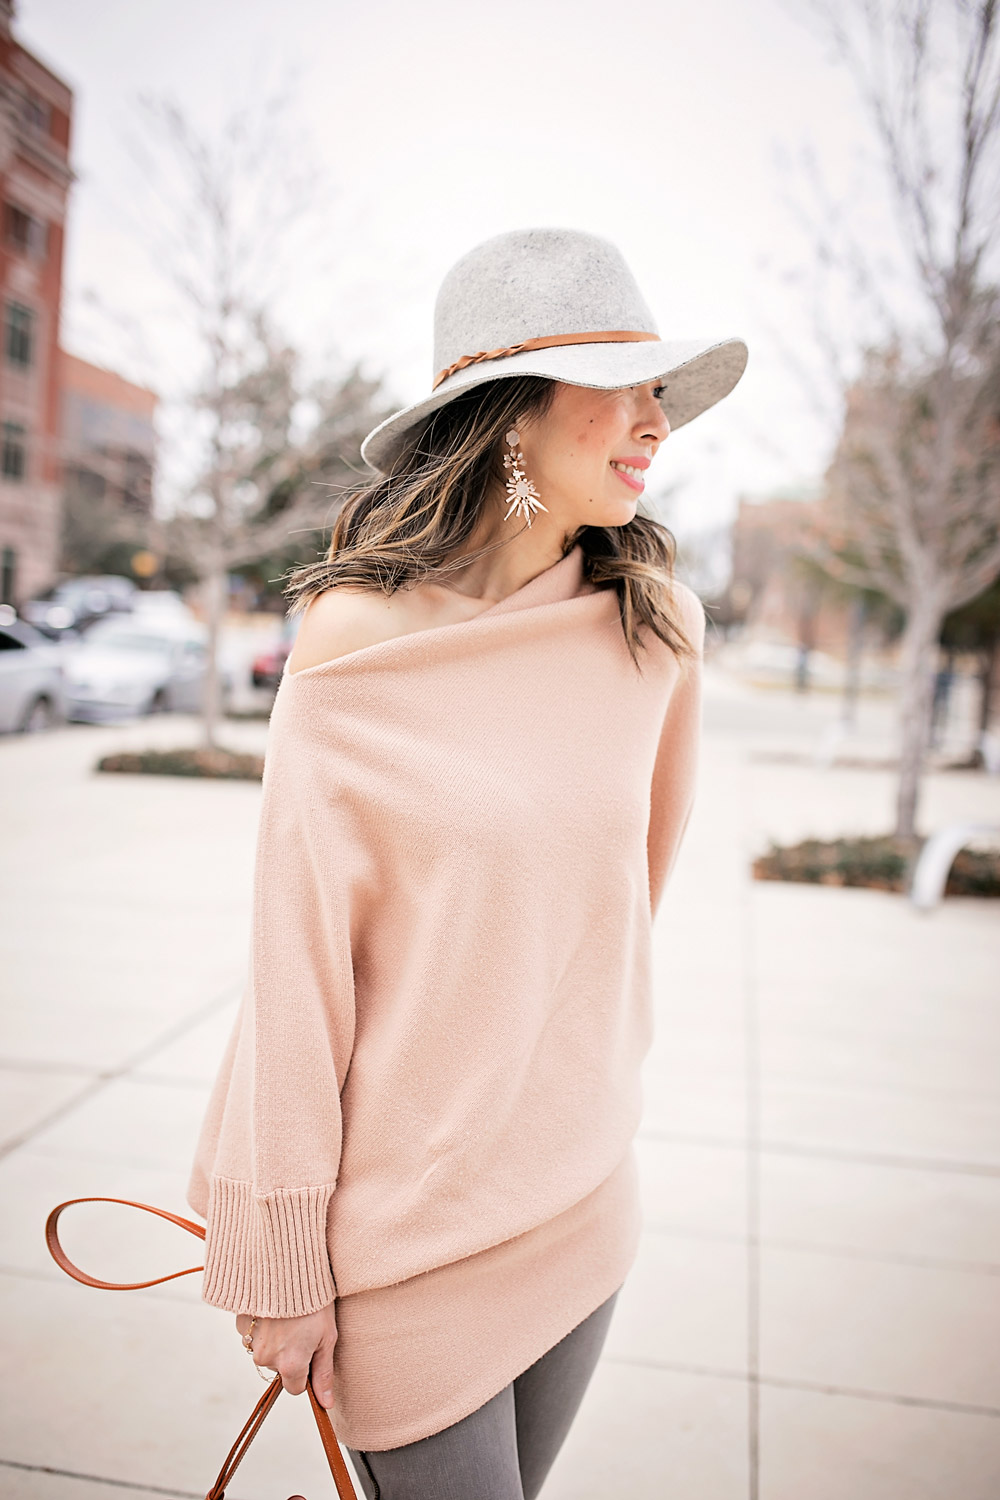 tan off the shoulder sweater with frame le skinny grey jeans, kendra scott isadora earrings, grey fedora